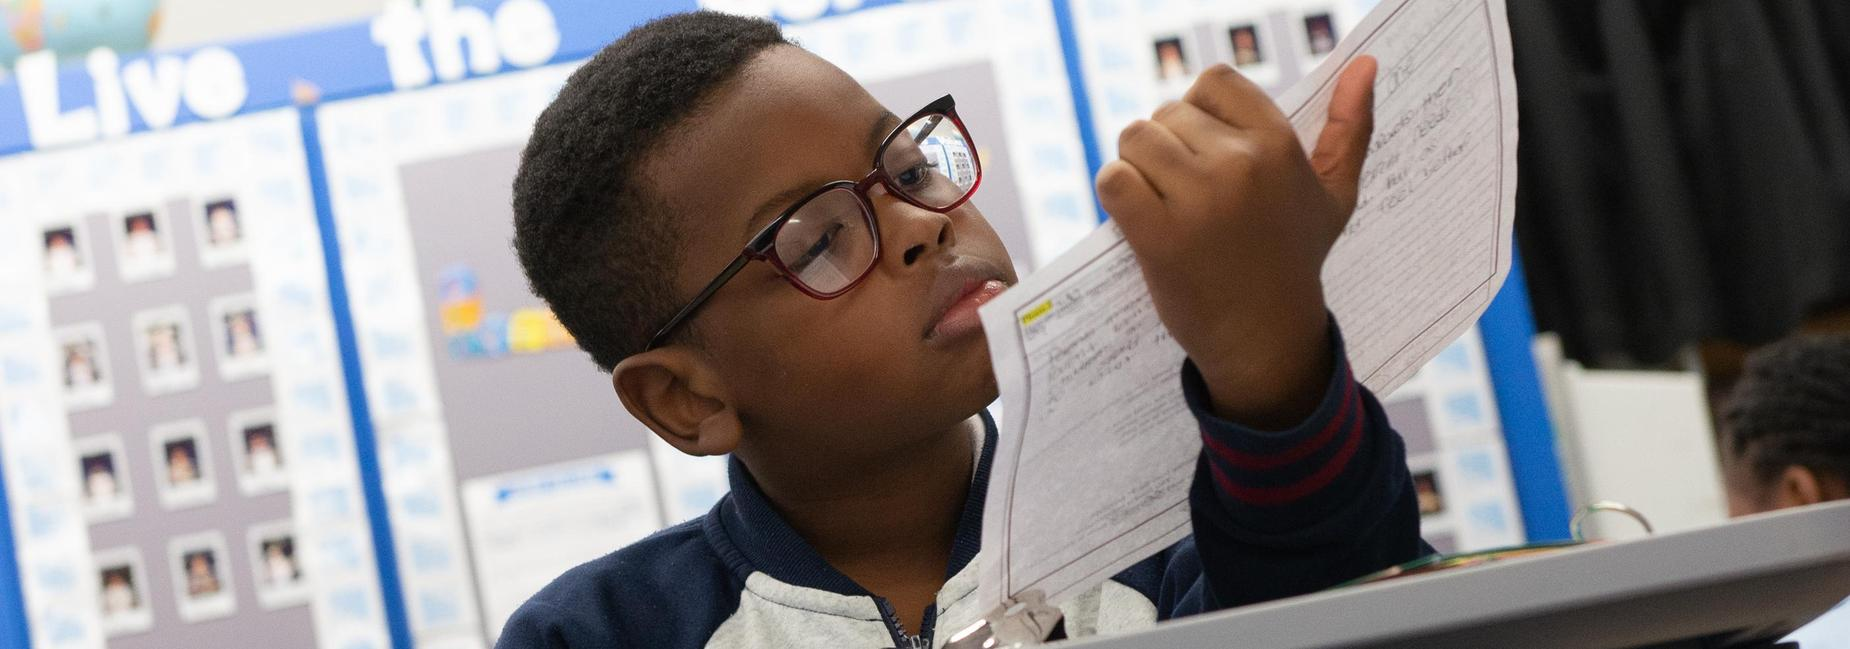 An elementary school student reading over a sheet of paper.